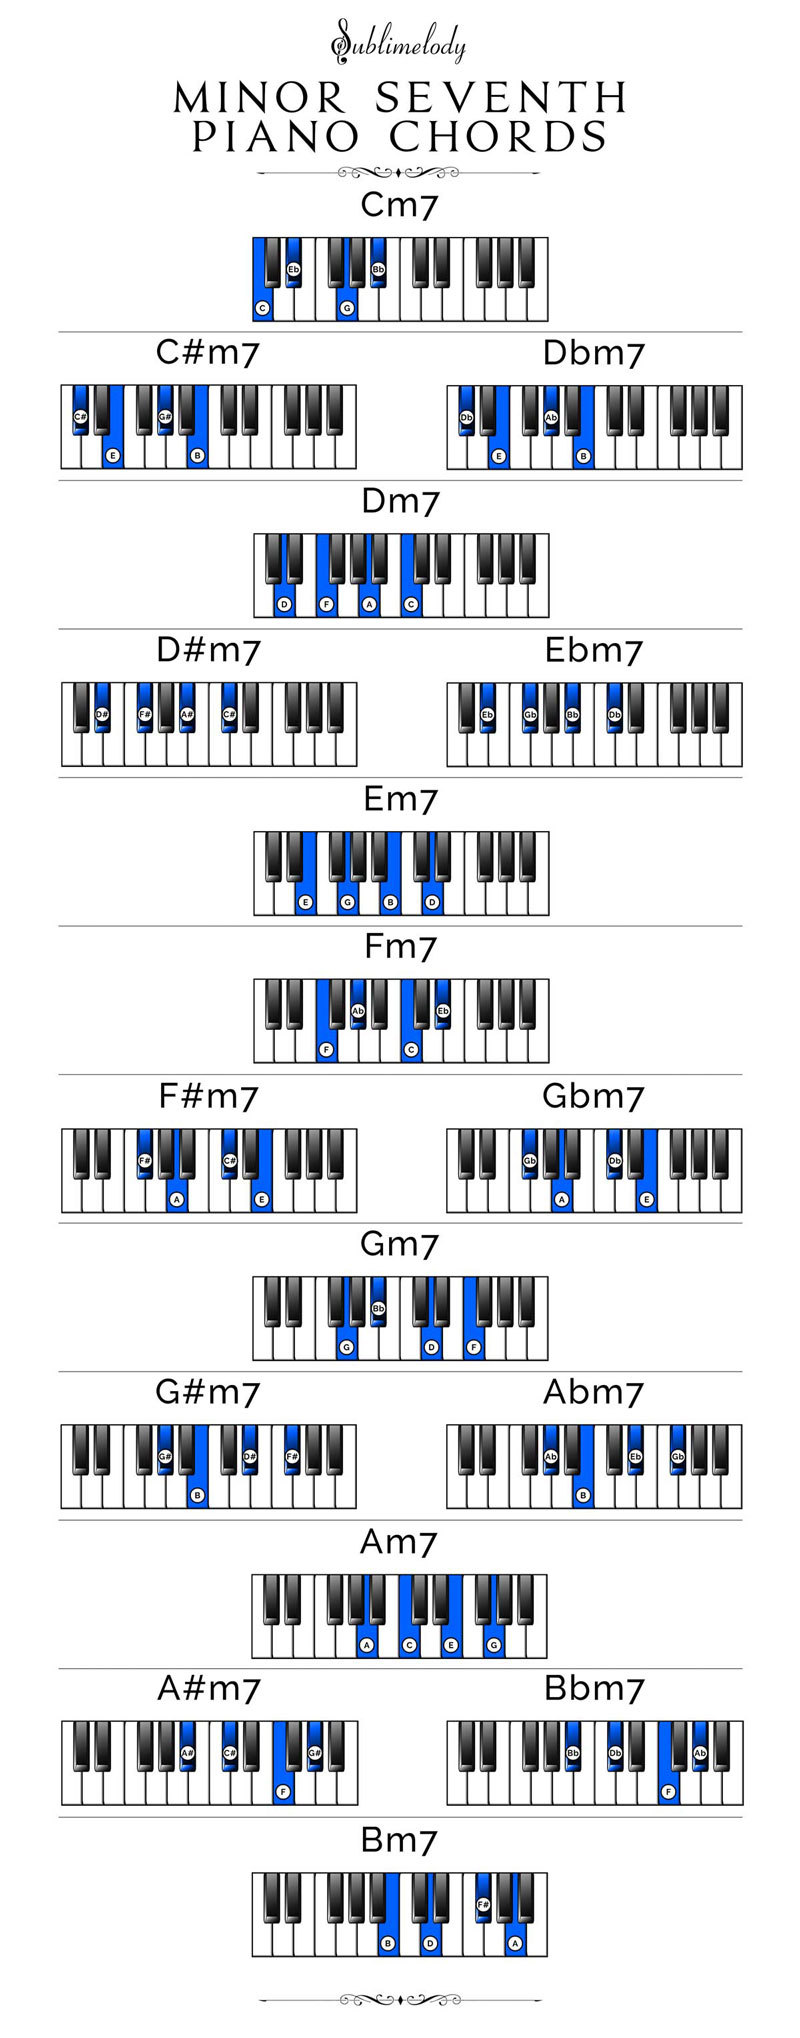 graphic regarding Piano Chords Chart Printable identify Piano Chords: The Definitive Expert (2018) - Sublimelody